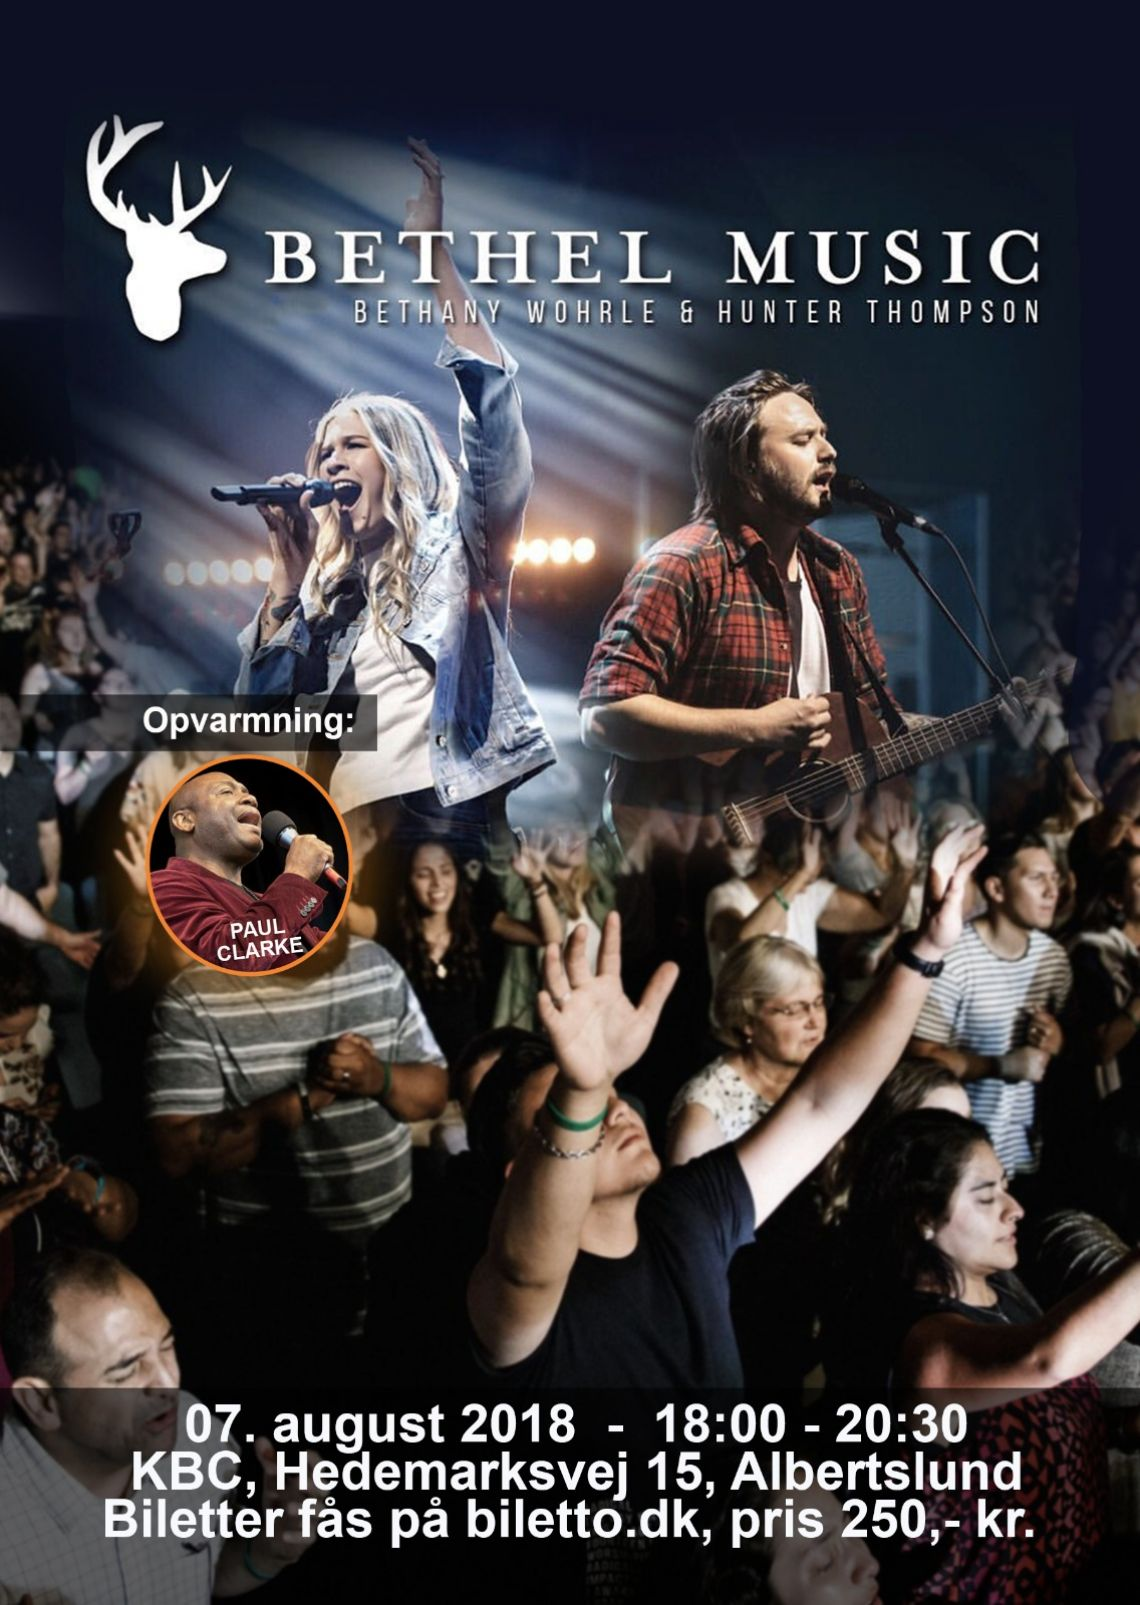 COPENHEAVEN with Bethel Music.